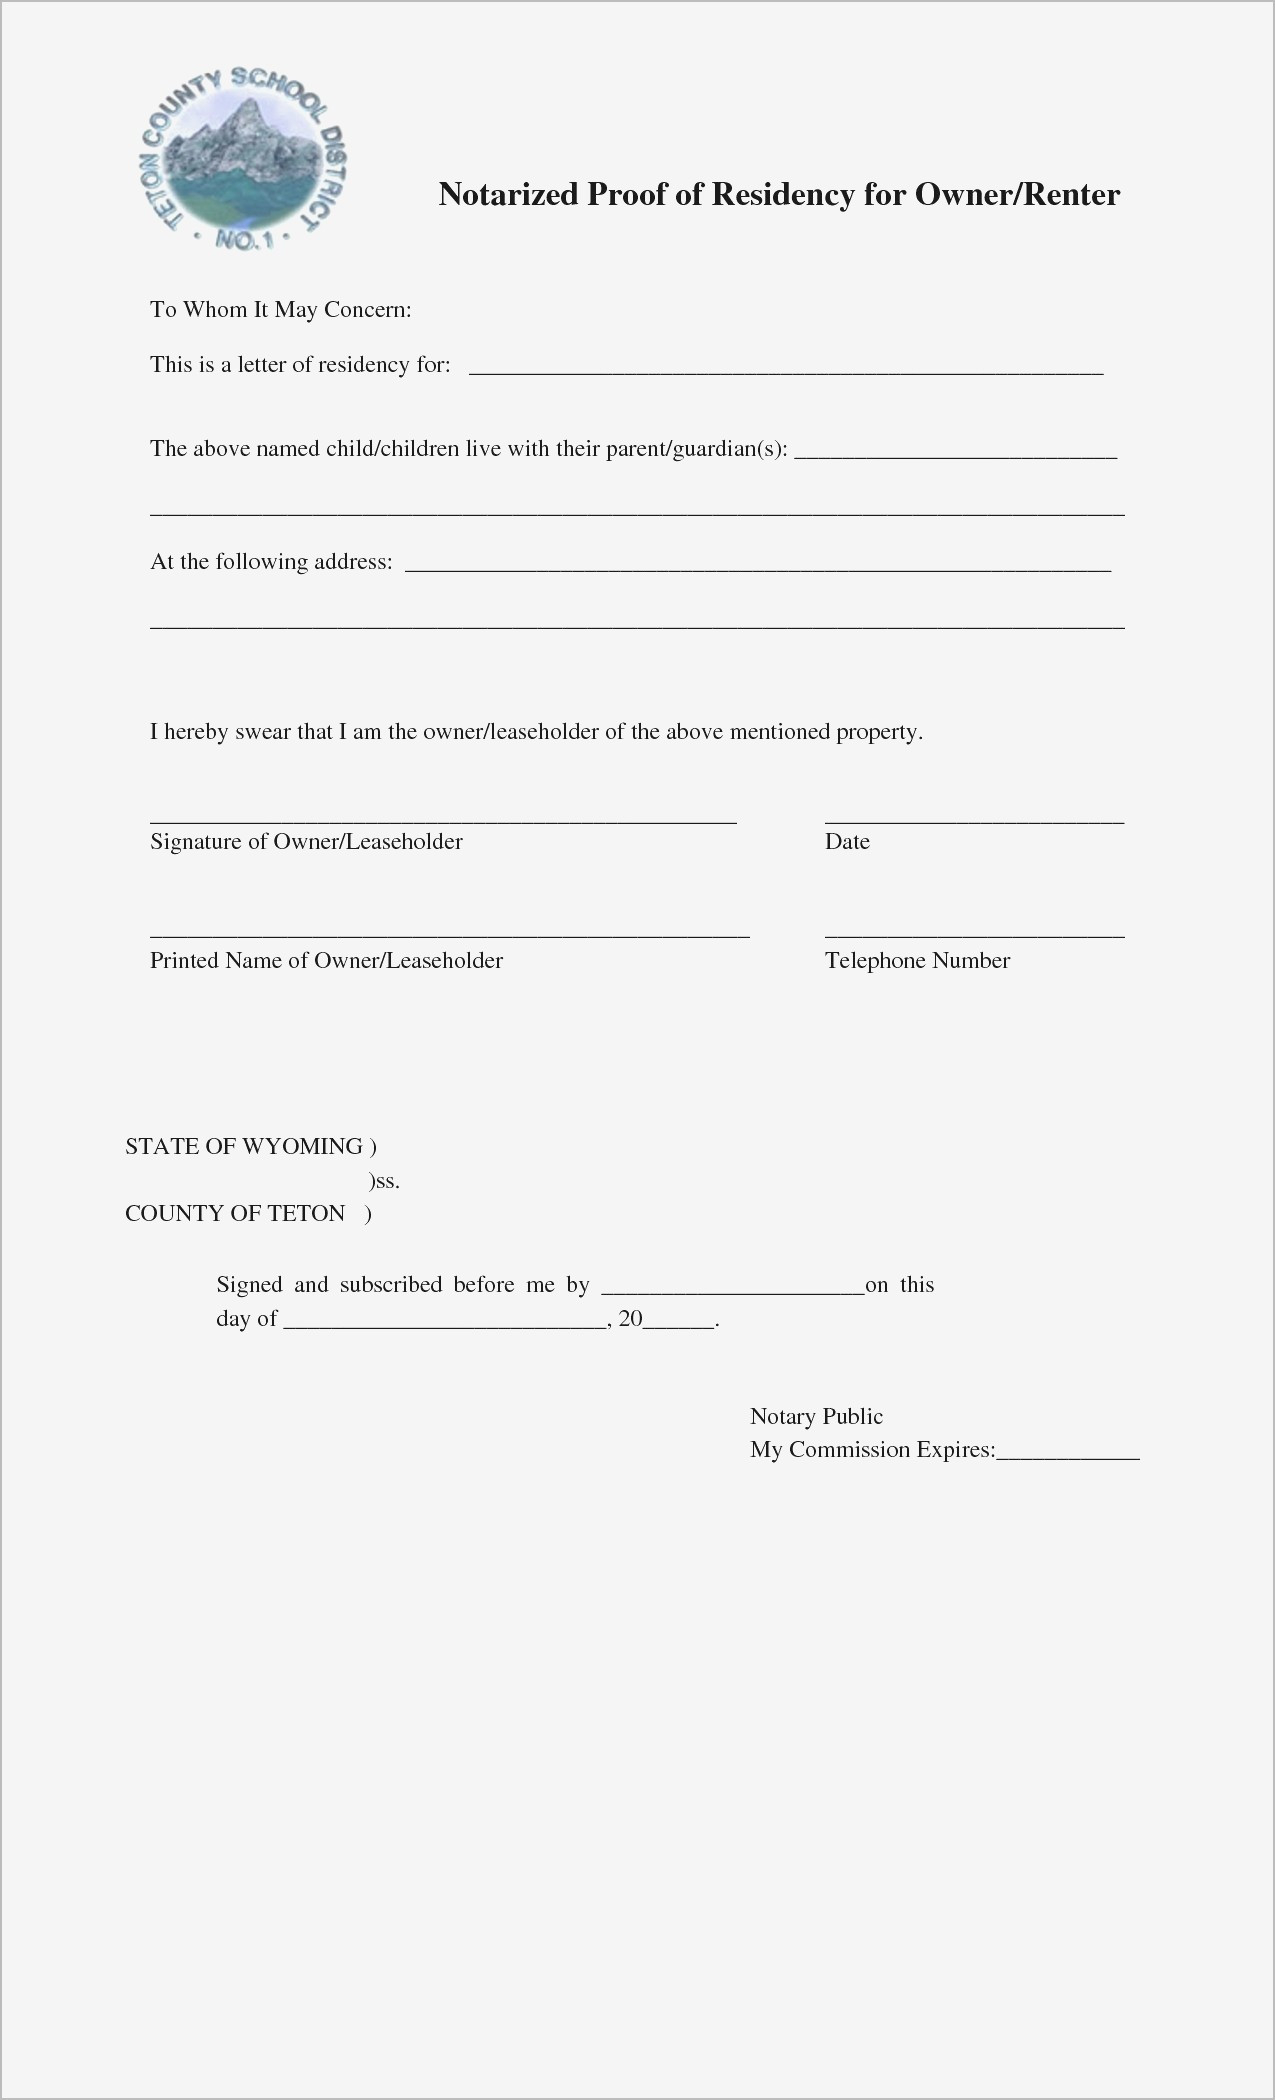 Printable Notarized Letter Of Residency Template - Notarized Letter Sample Elegant Notary forms New Printable Notarized